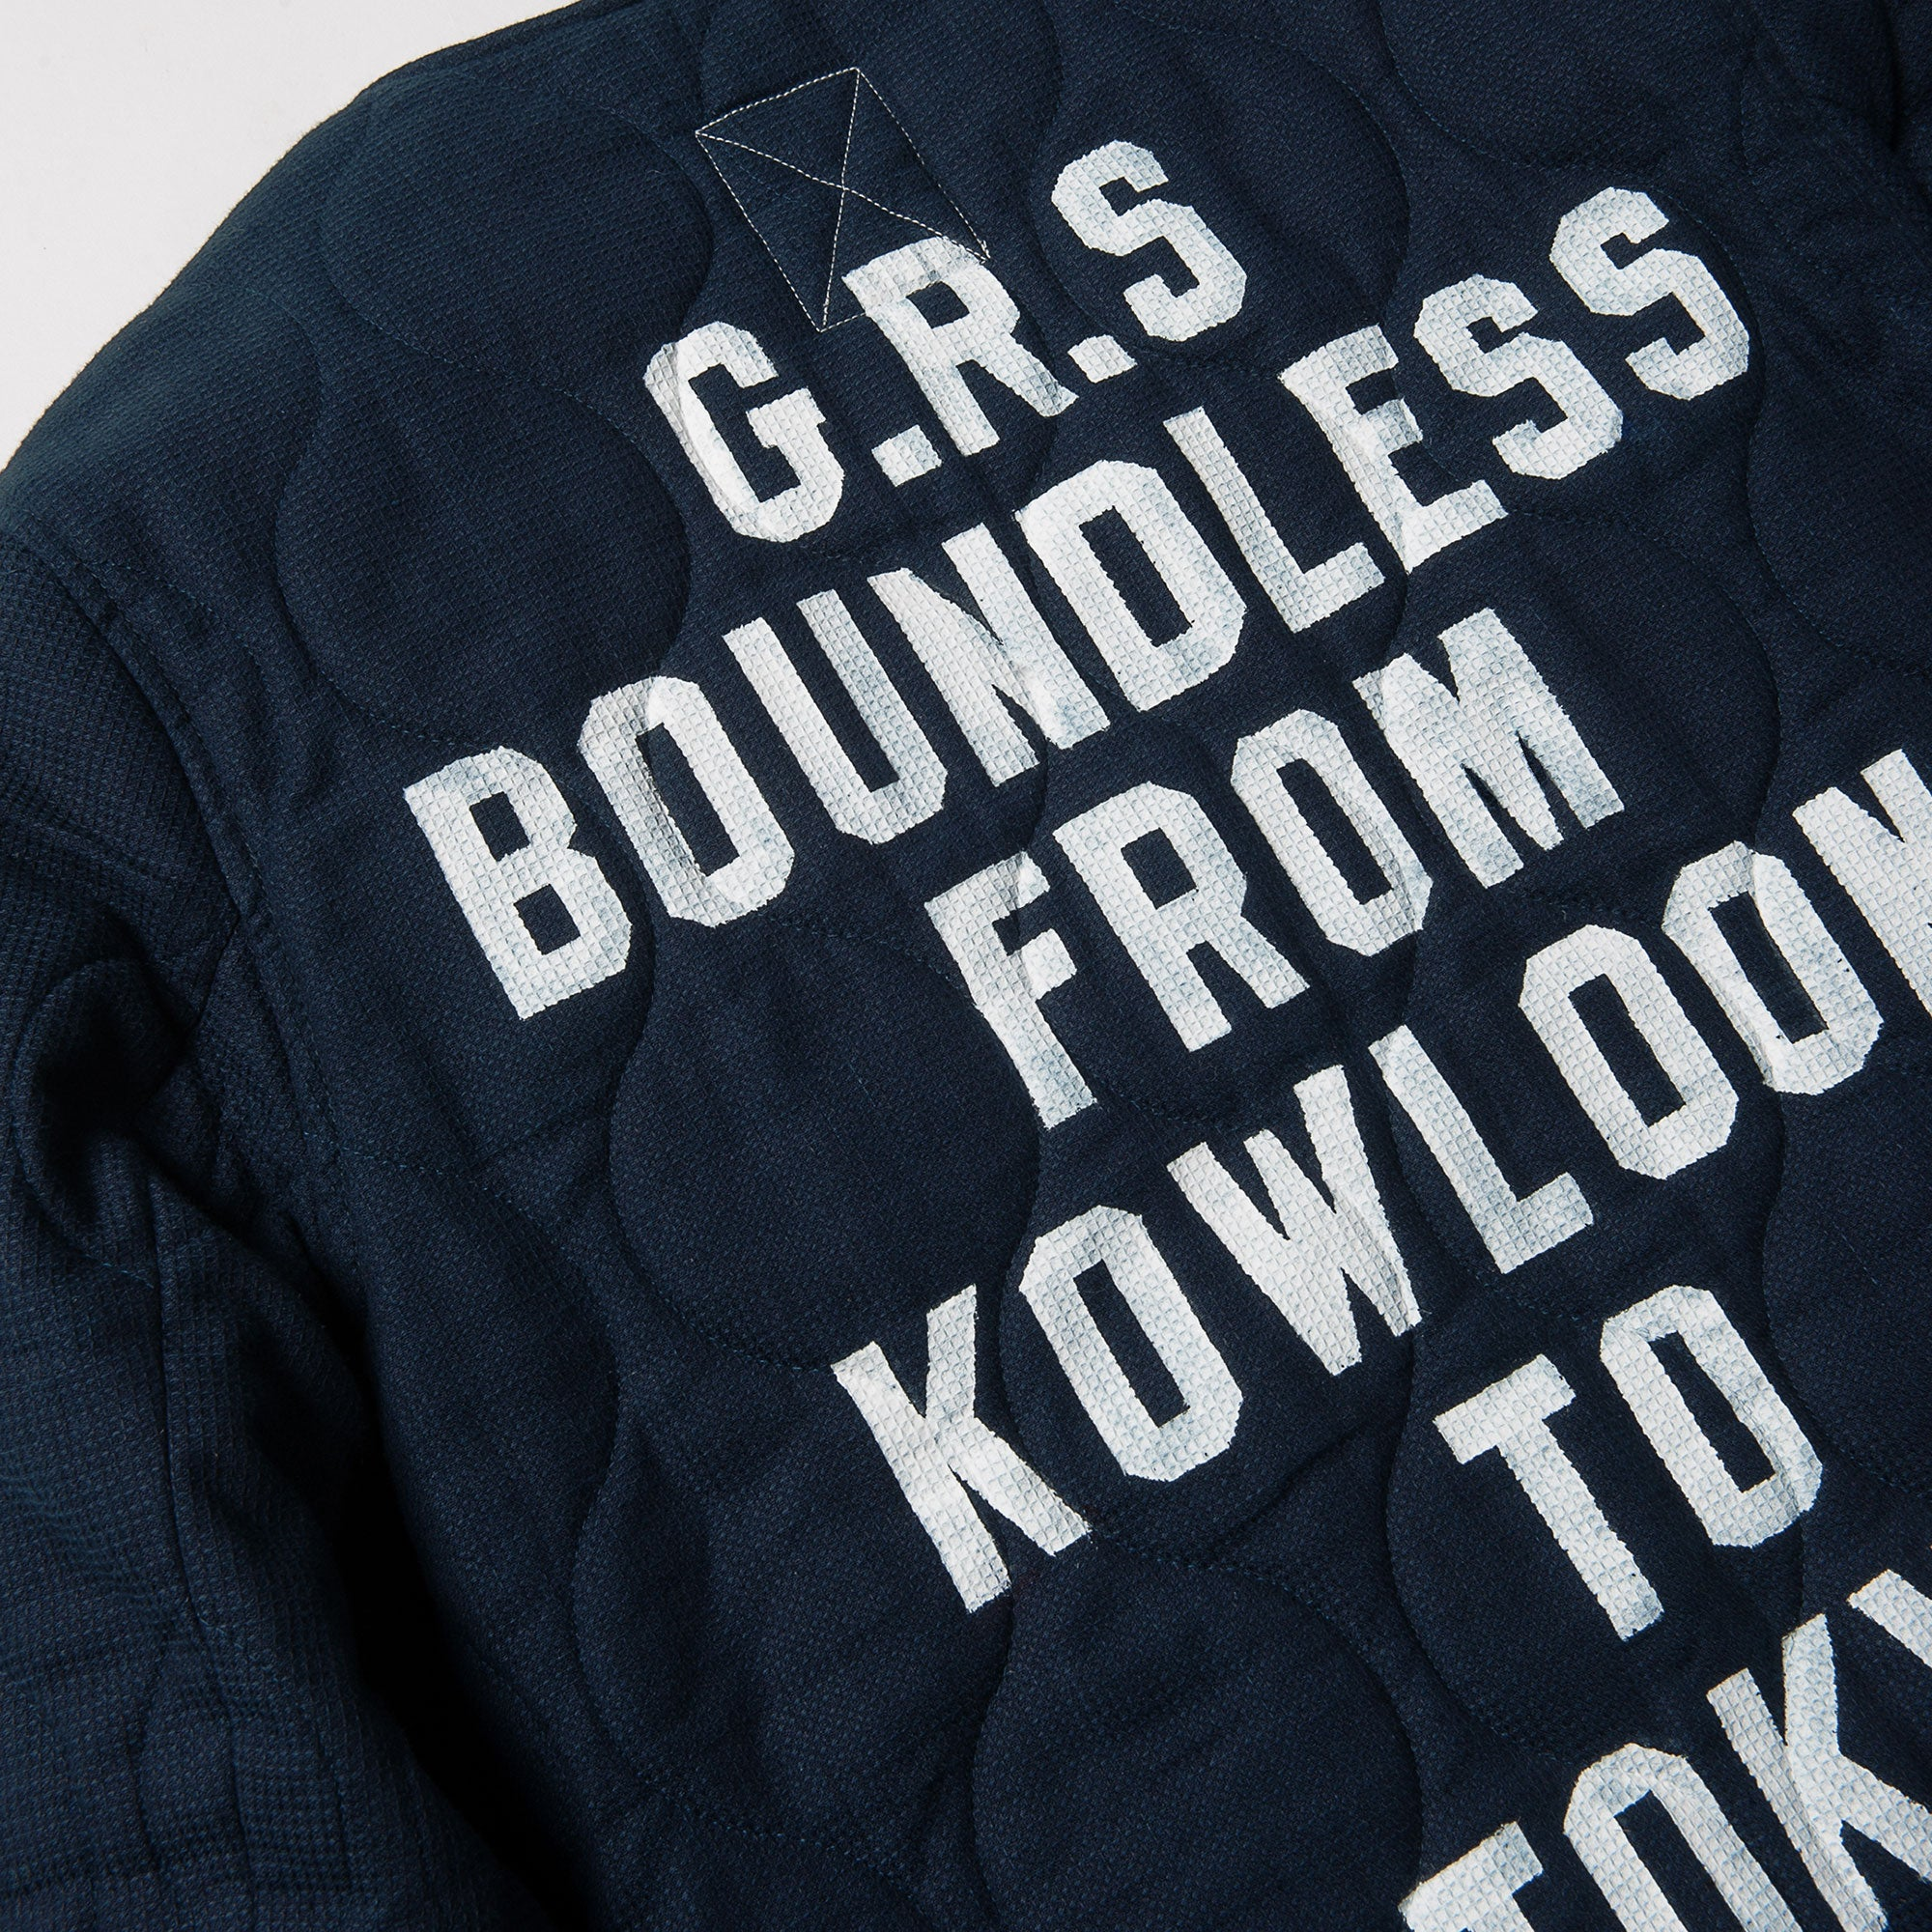 BOUNDLESS SERIES - HAND PAINTED SASHIKO QUILTED JACKET by HK SIGN PAINTER MAN LUK